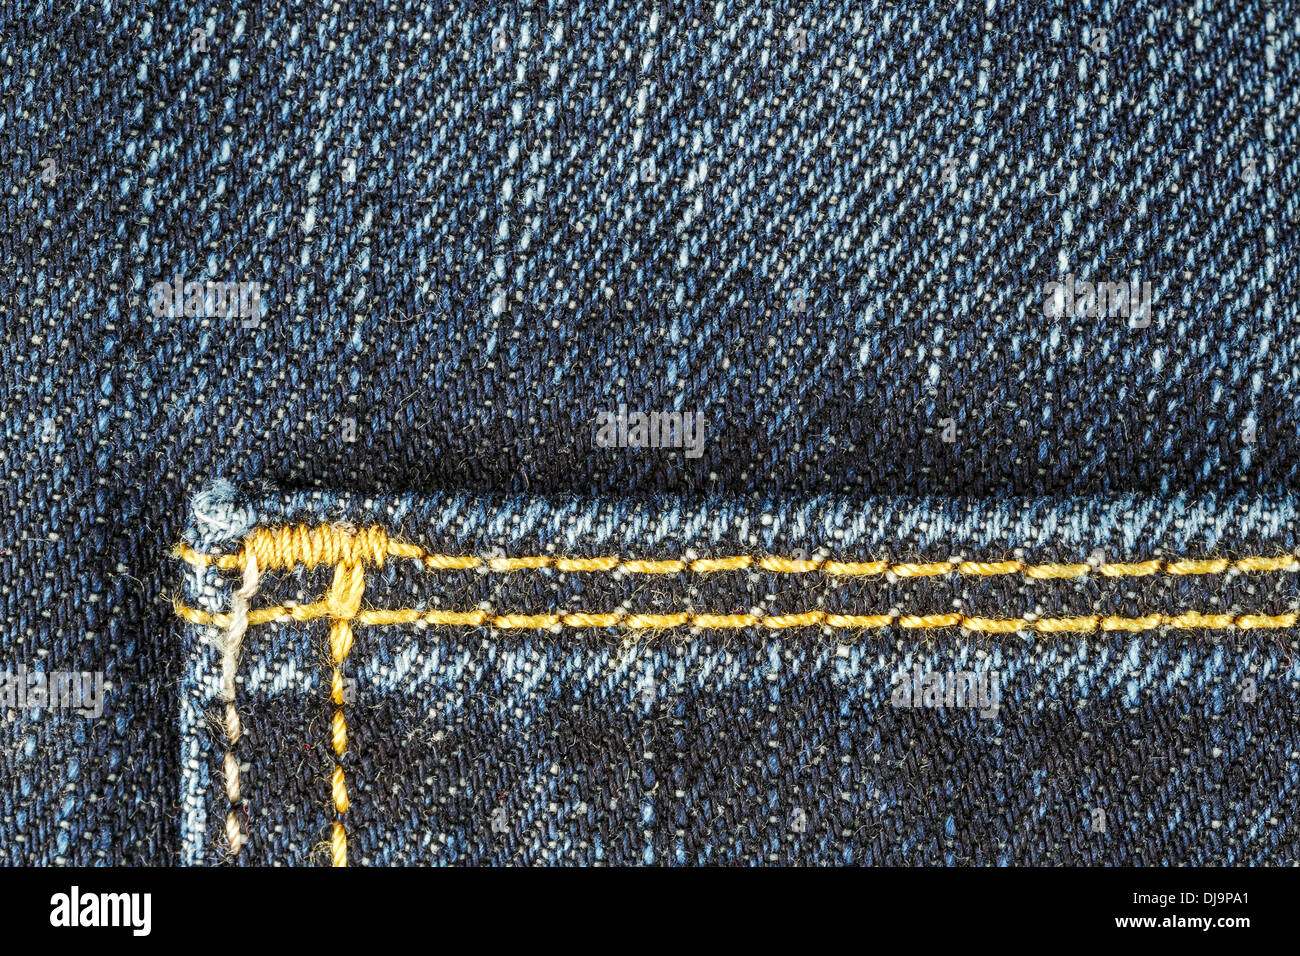 Detail of blue jeans trousers - Stock Image